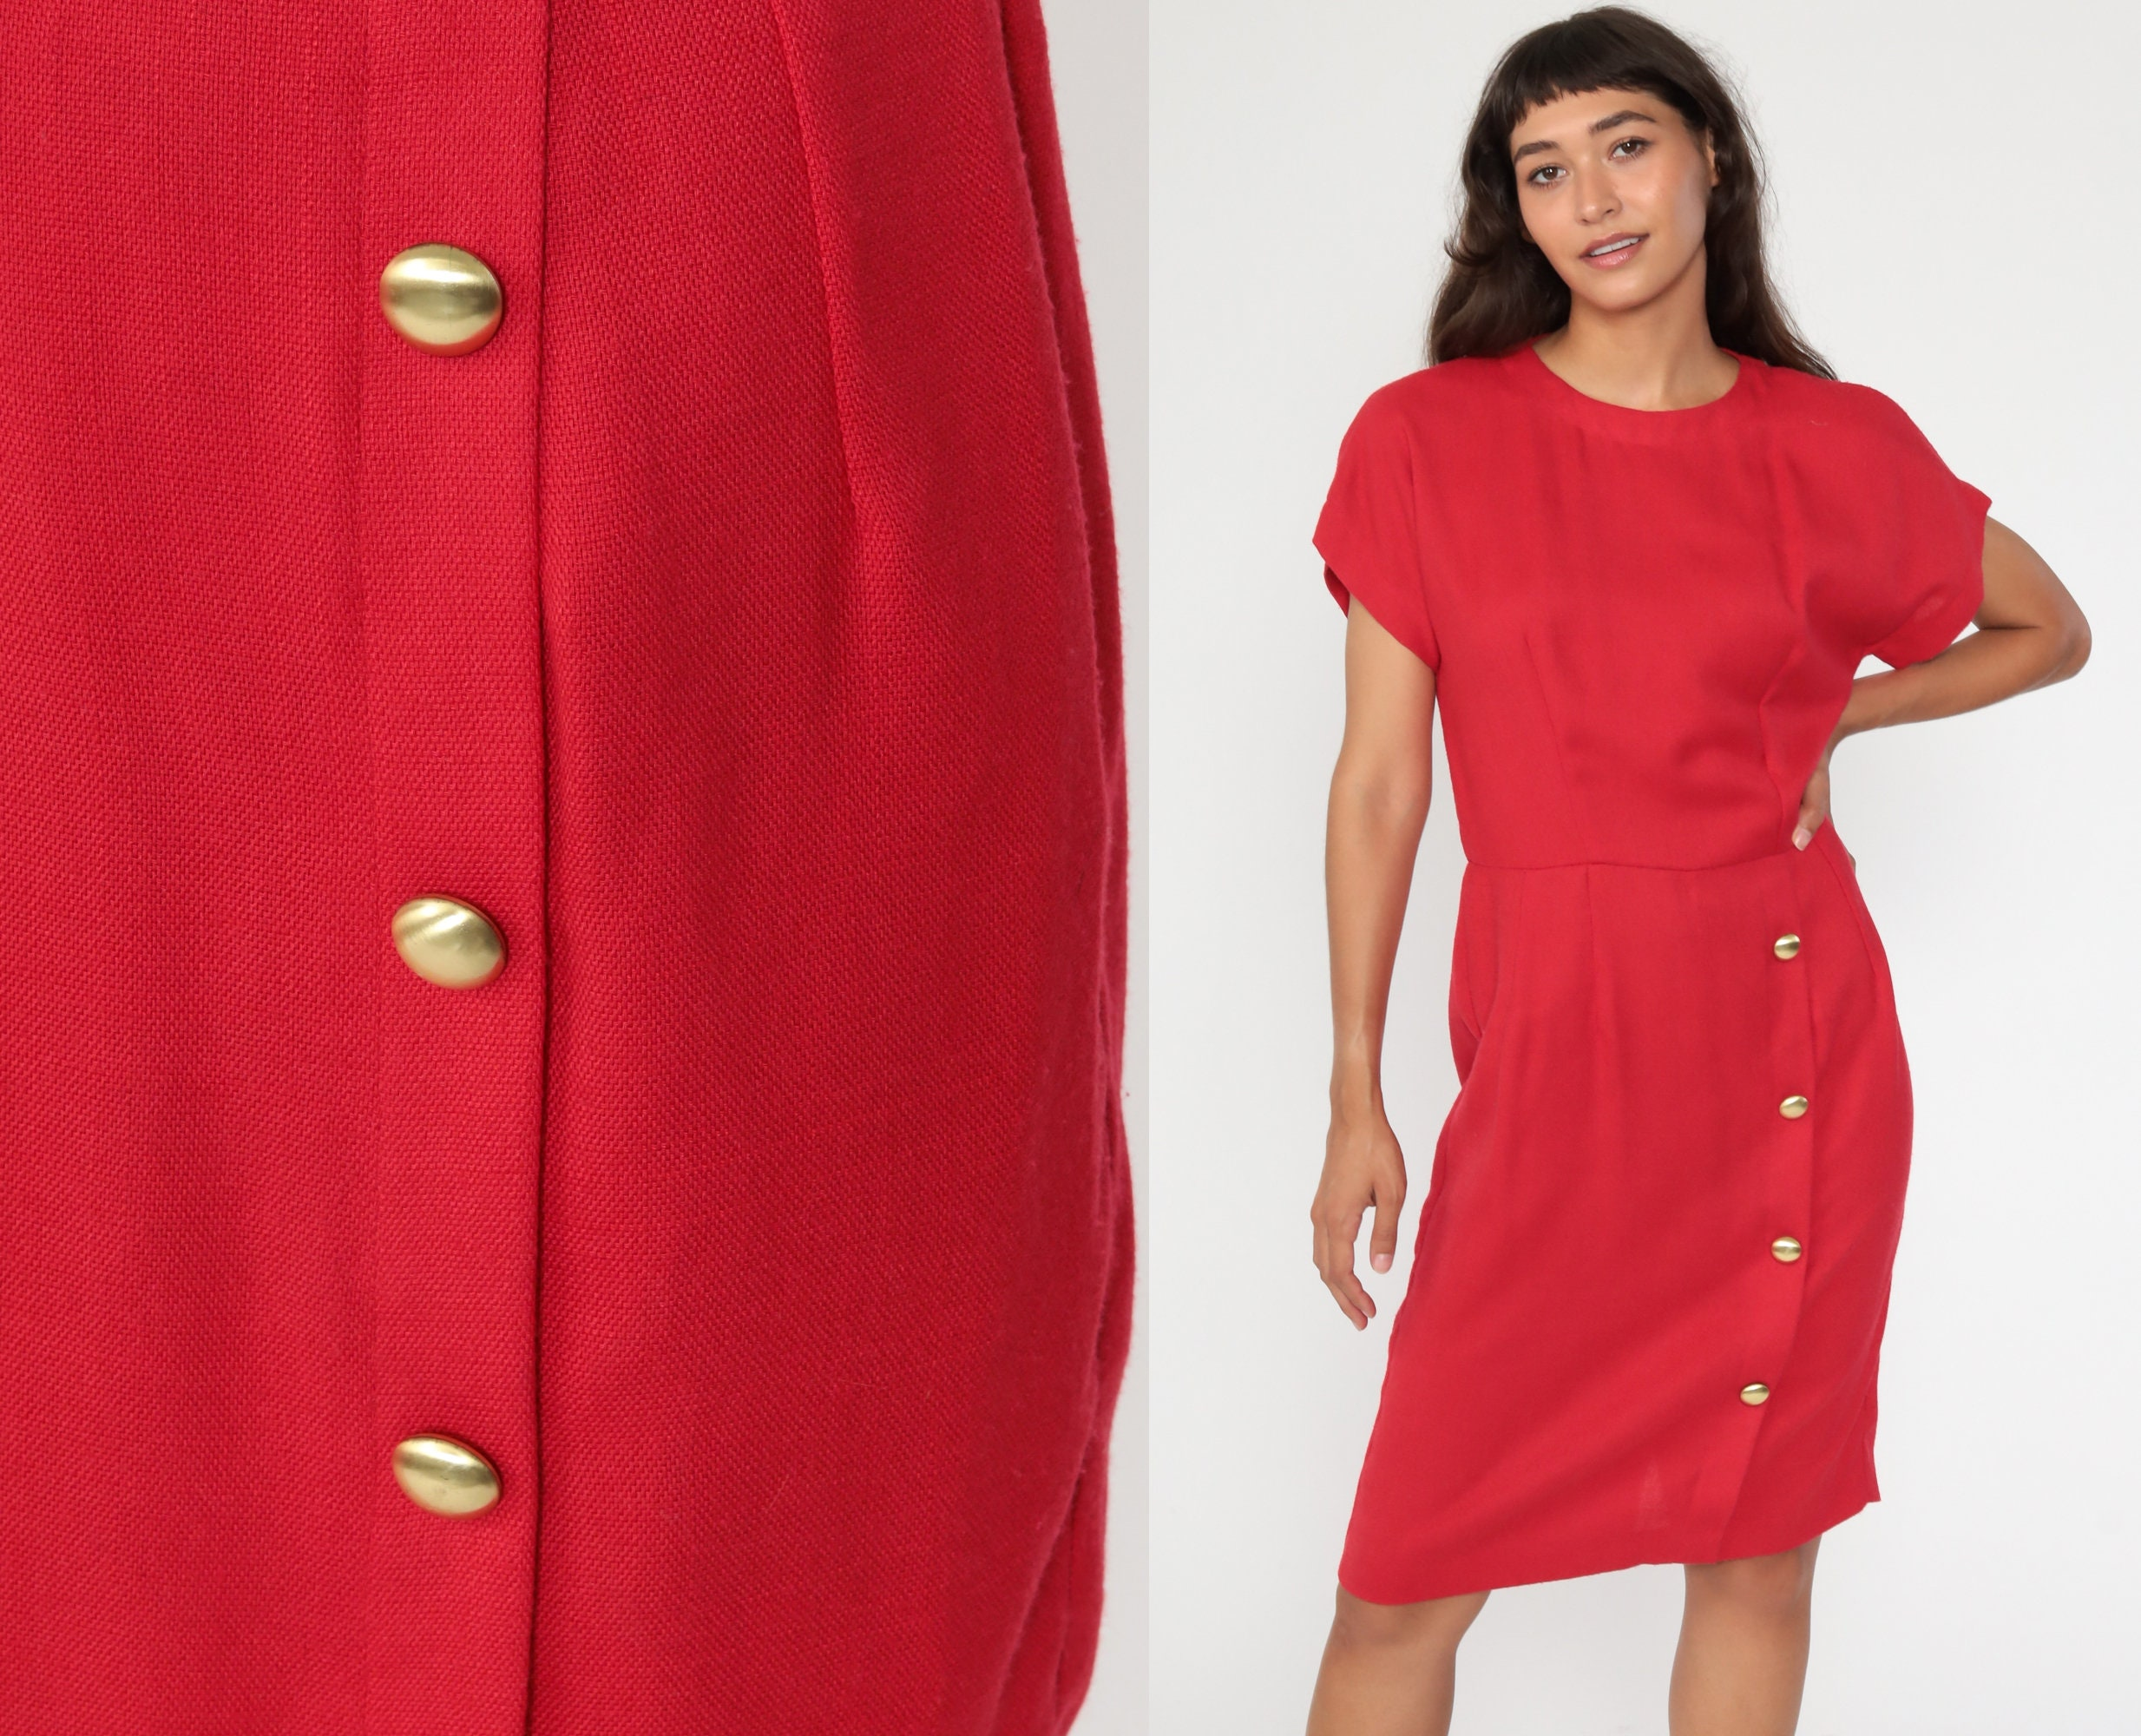 80s Dresses | Casual to Party Dresses Red Sheath Dress 80S Midi Button Skirt Vintage Wiggle Pencil 1980S Secretary Short Sleeve Fitted Rayon Medium 8 $39.20 AT vintagedancer.com